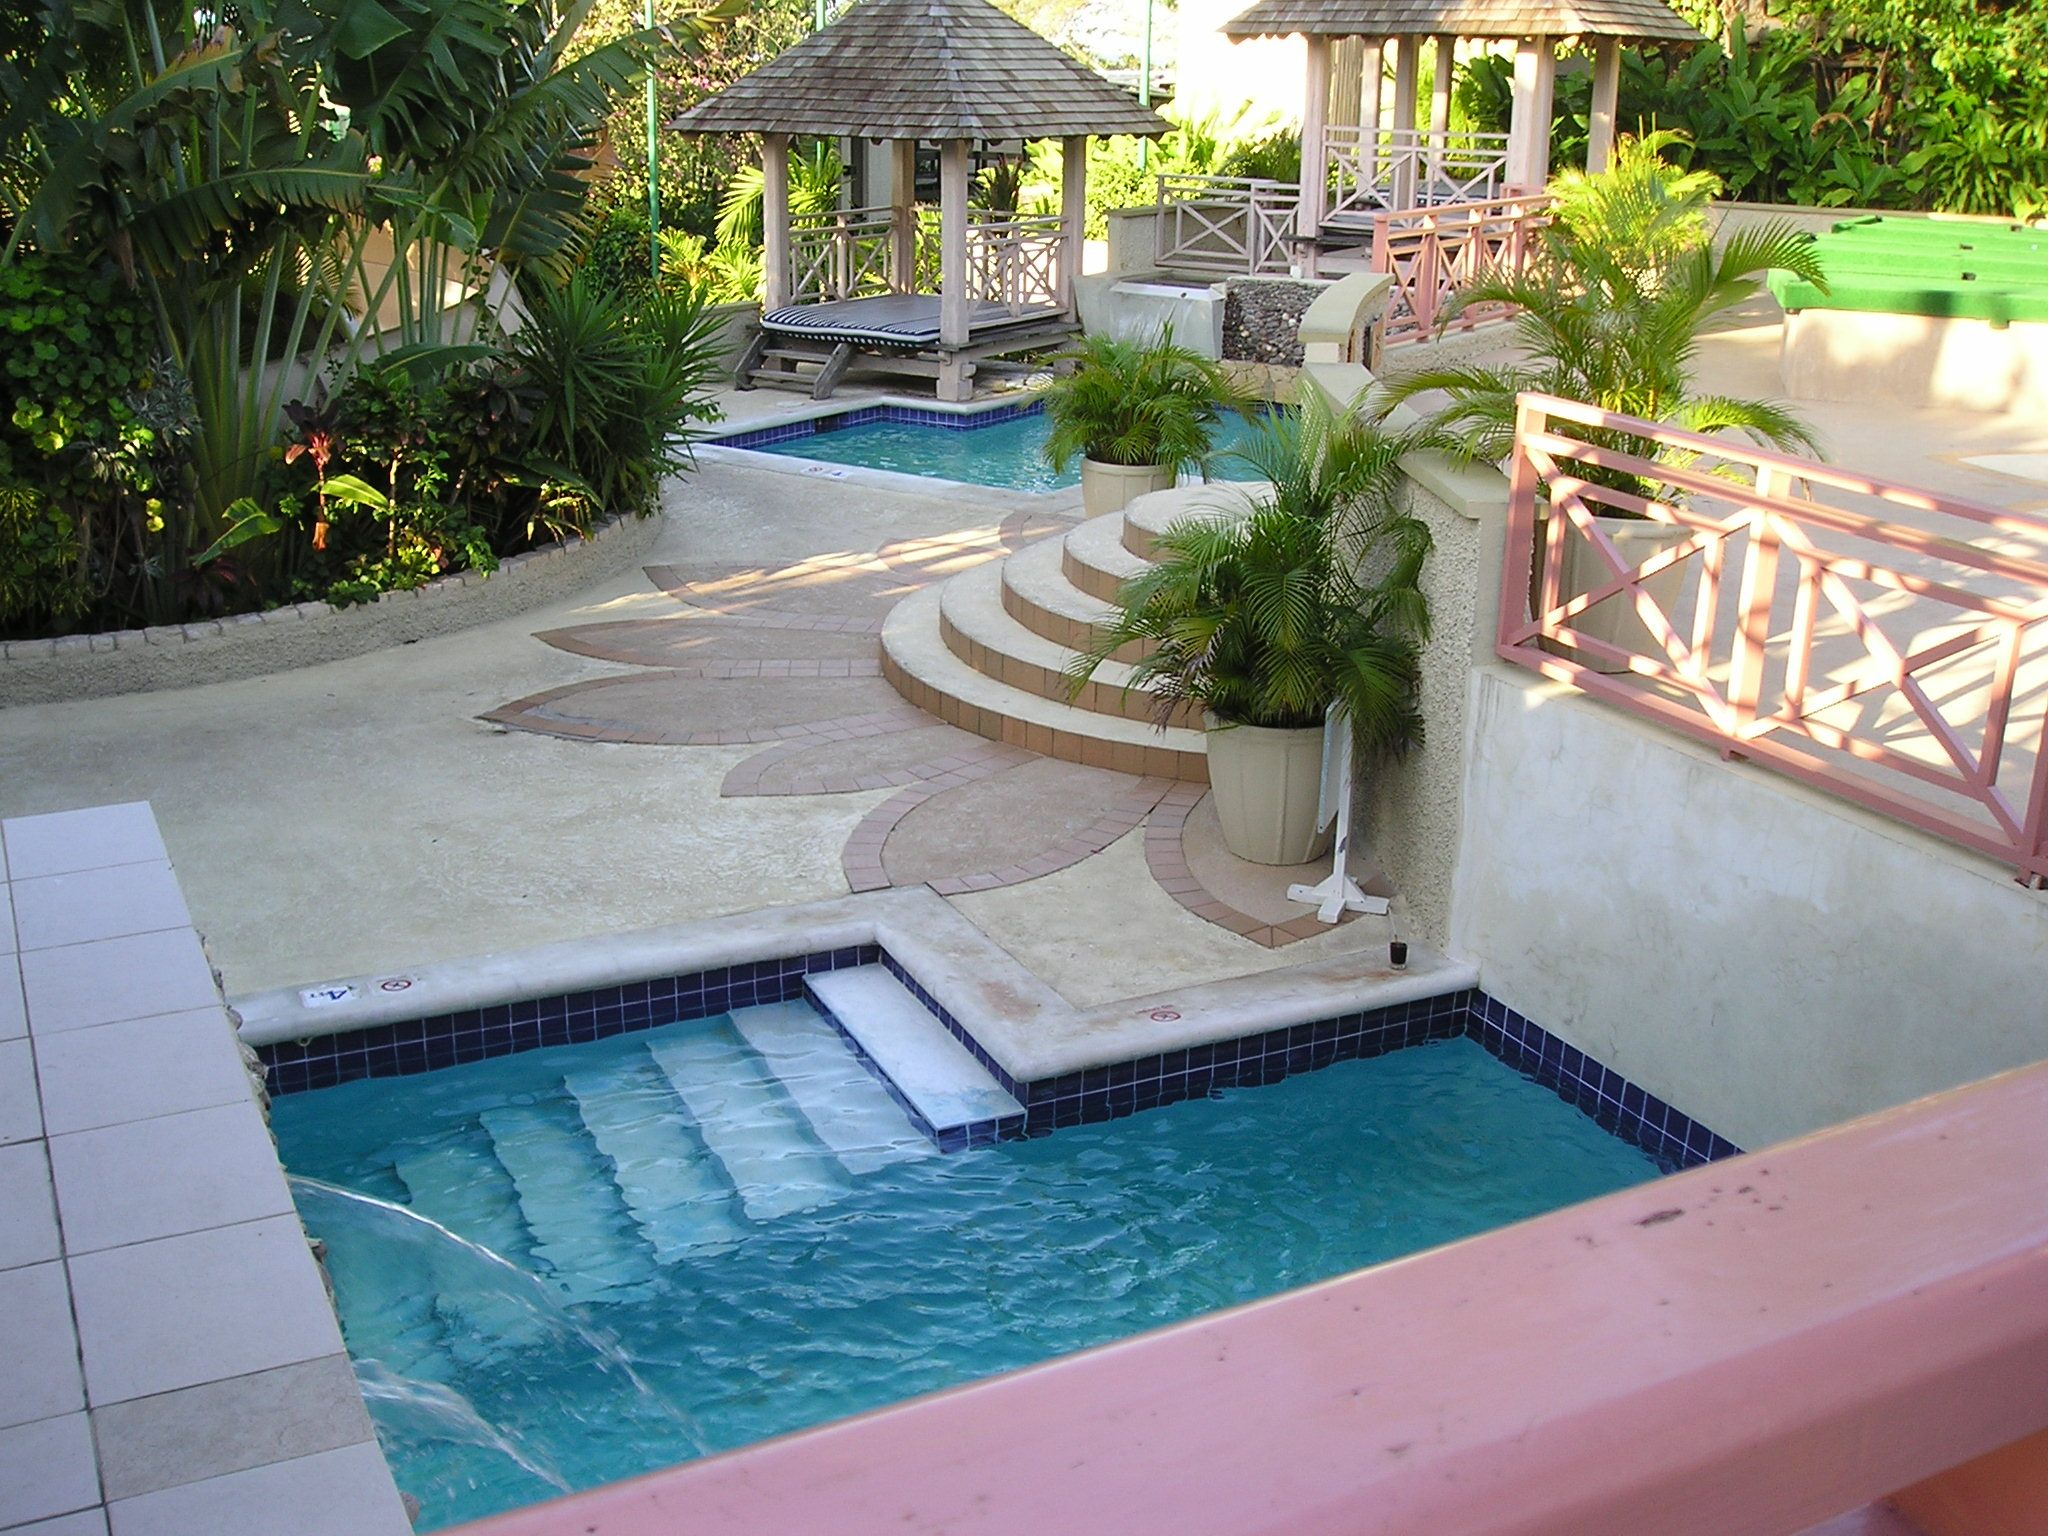 Pool Pics For Small Backyards Small Swimming Pools Designs Ideas pertaining to Small Pool Backyard Ideas